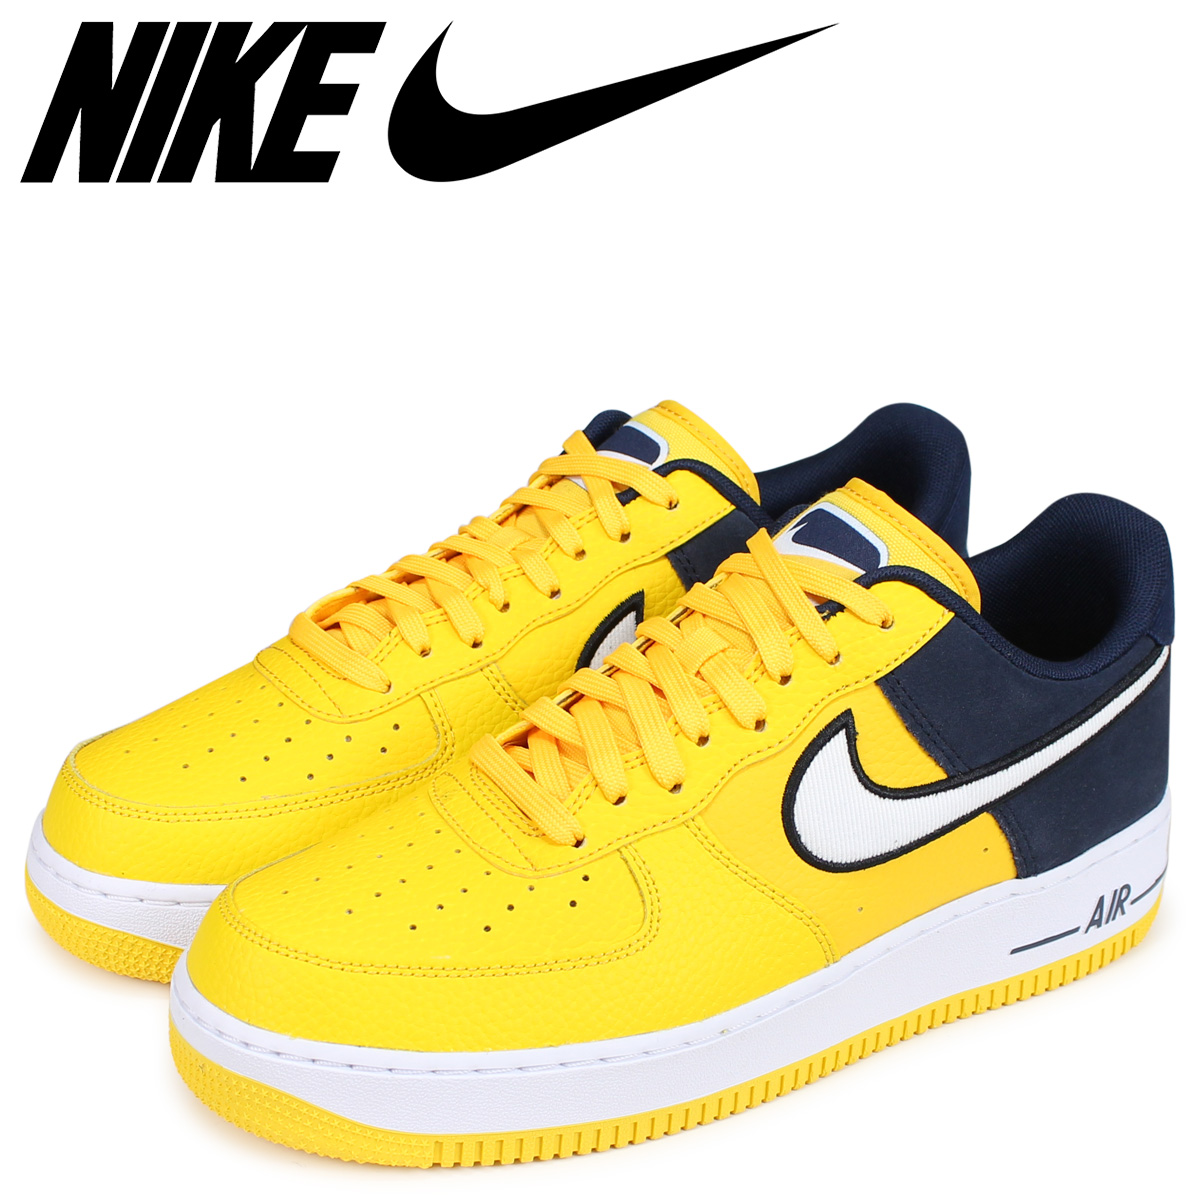 NIKE Nike air force 1 sneakers men AIR FORCE 1 07 LV8 yellow AO2439 700